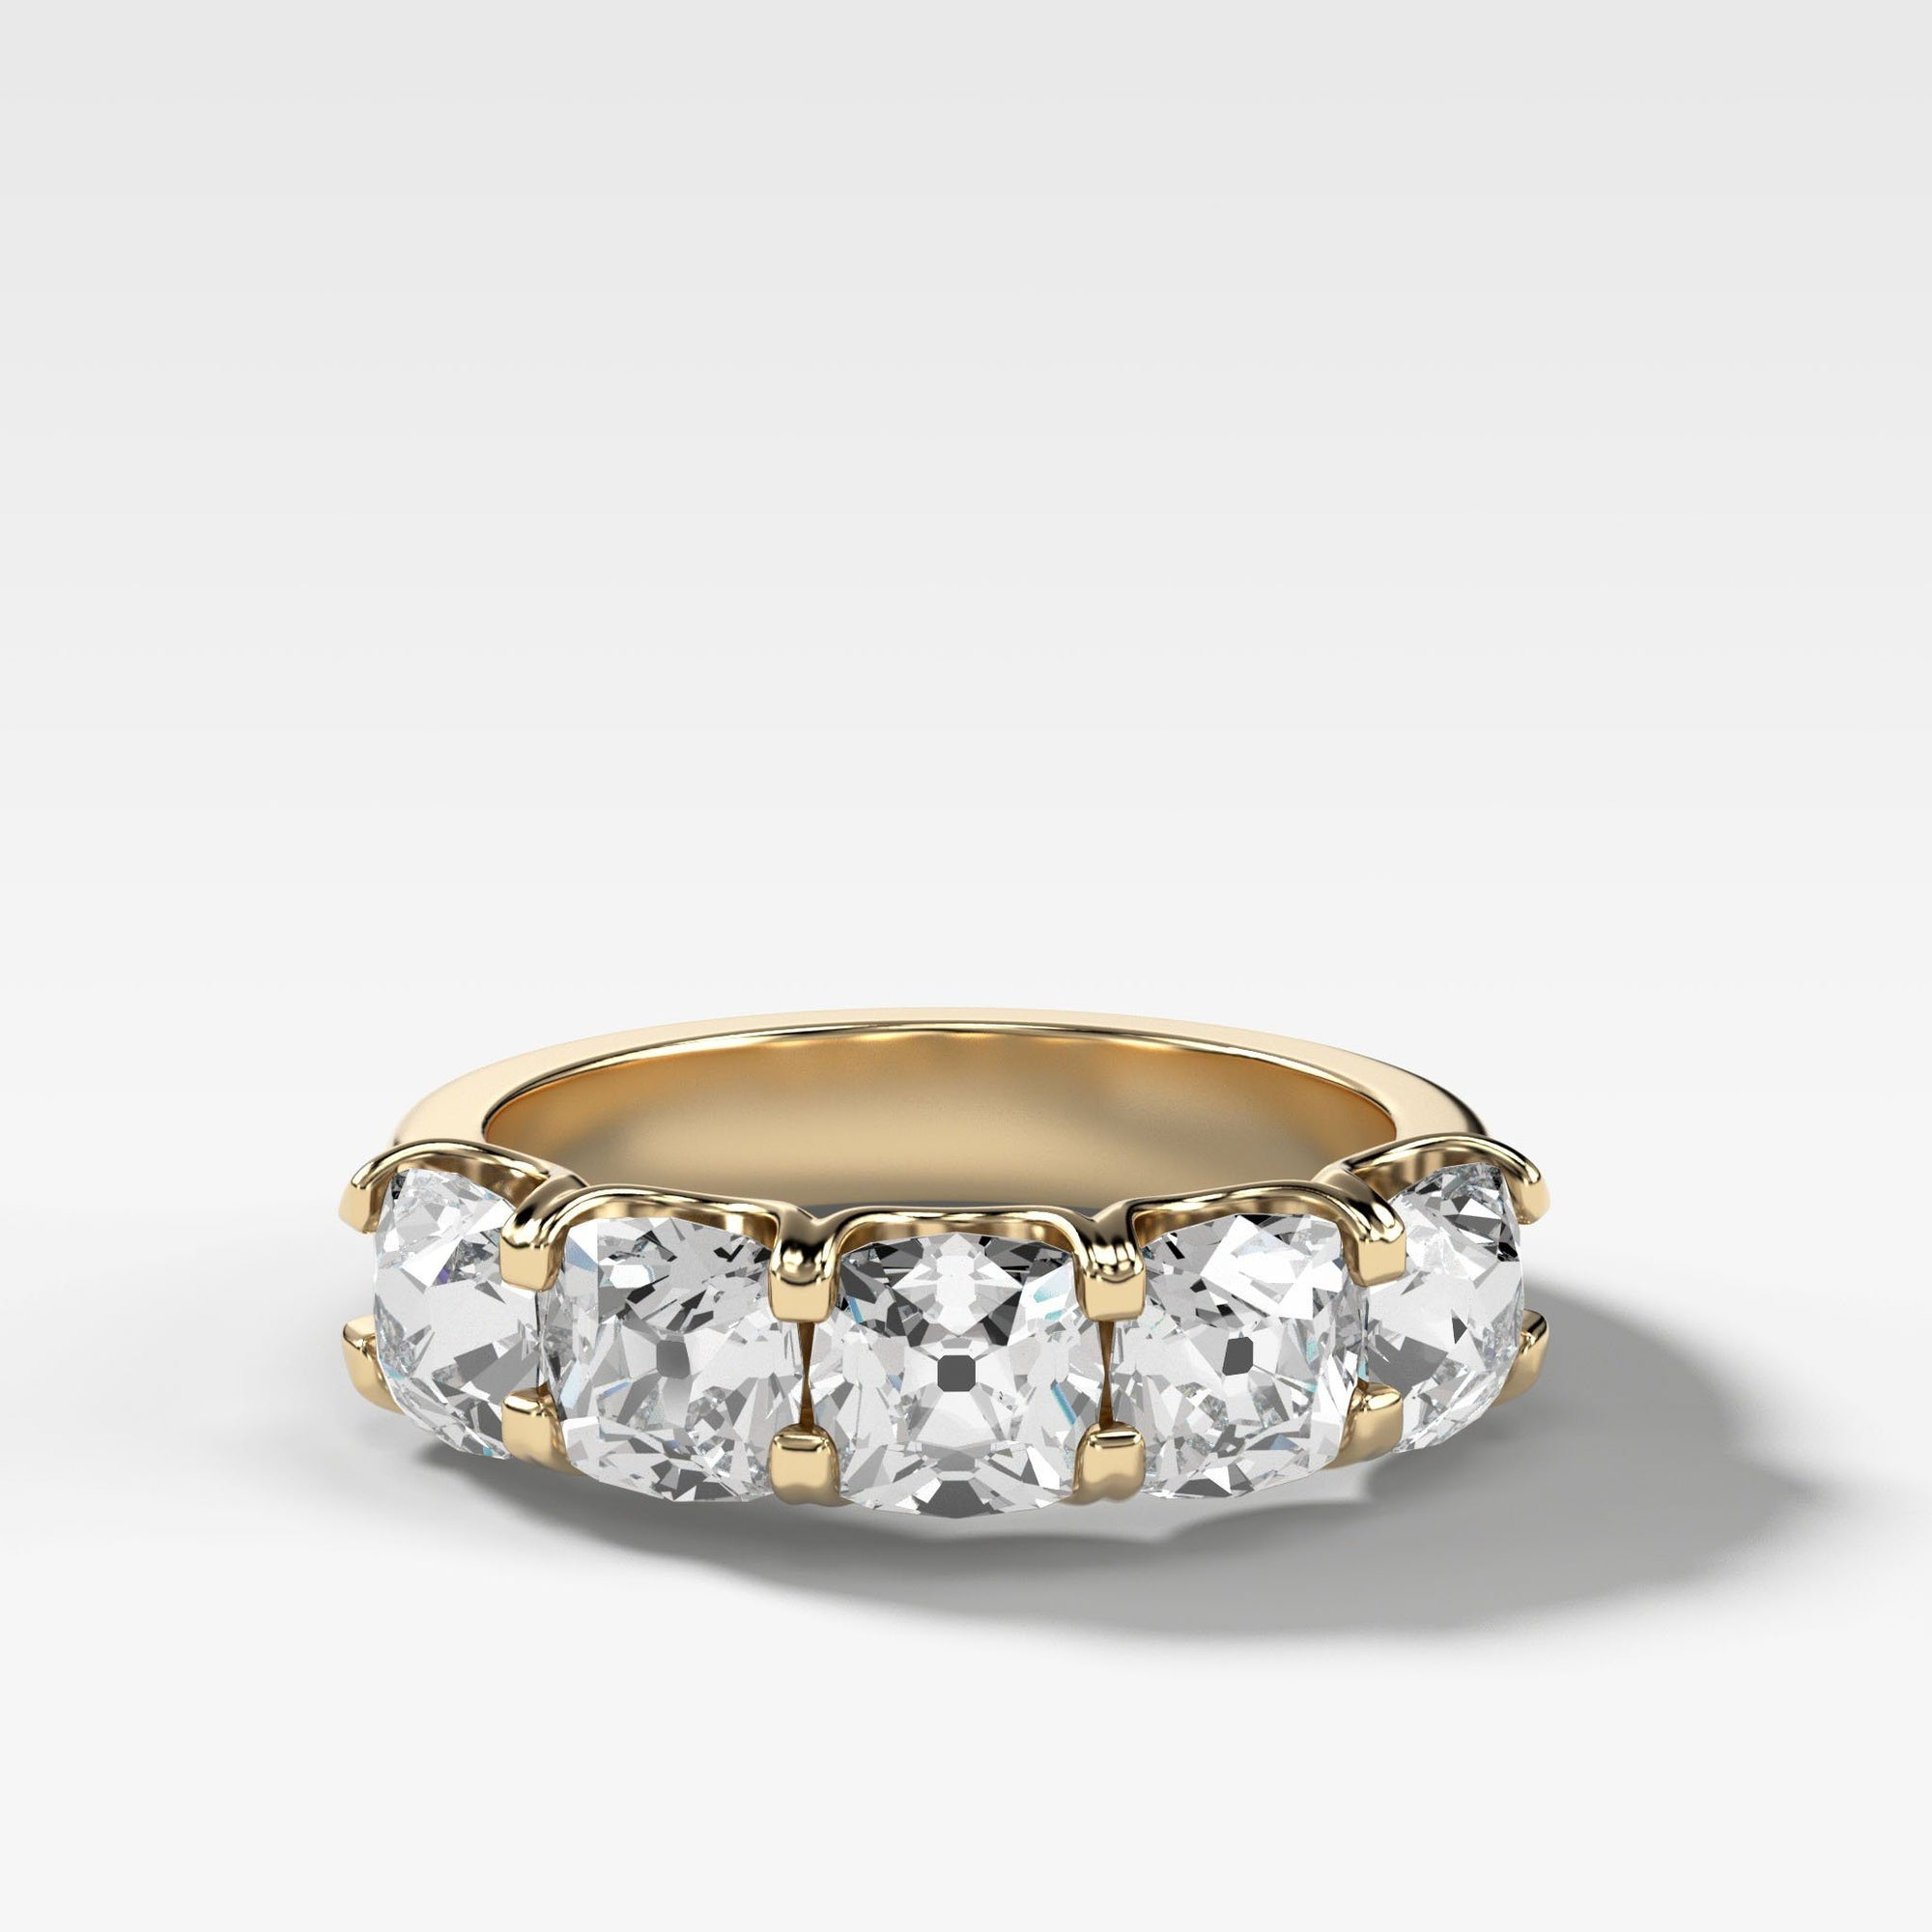 Five Stone Shared Prong Diamond Band With Old Mine Cuts (2.75ctw) In Yellow Gold By Good Stone